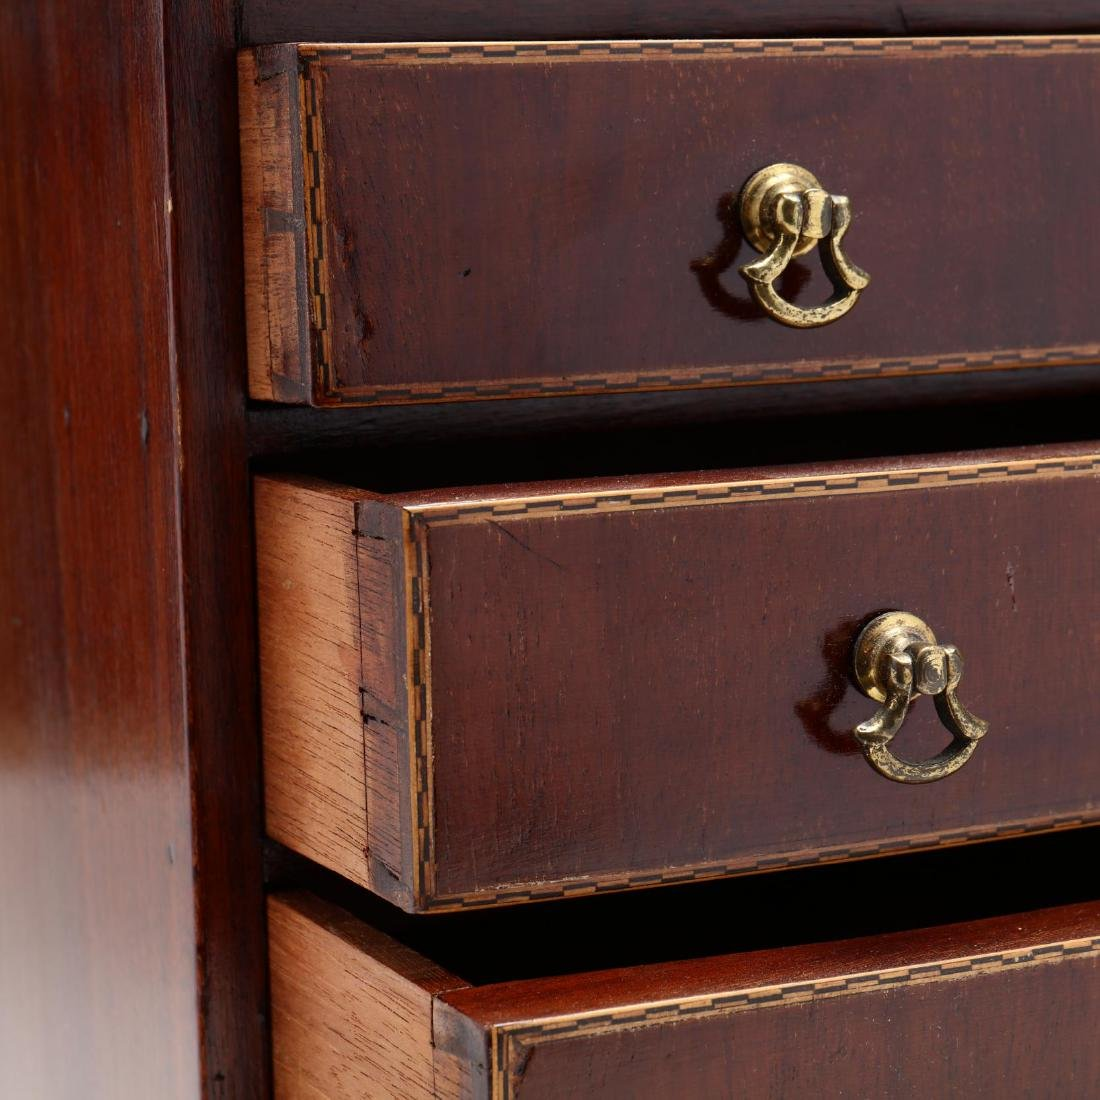 George III Inlaid Miniature Chest and Lidded Box - 5